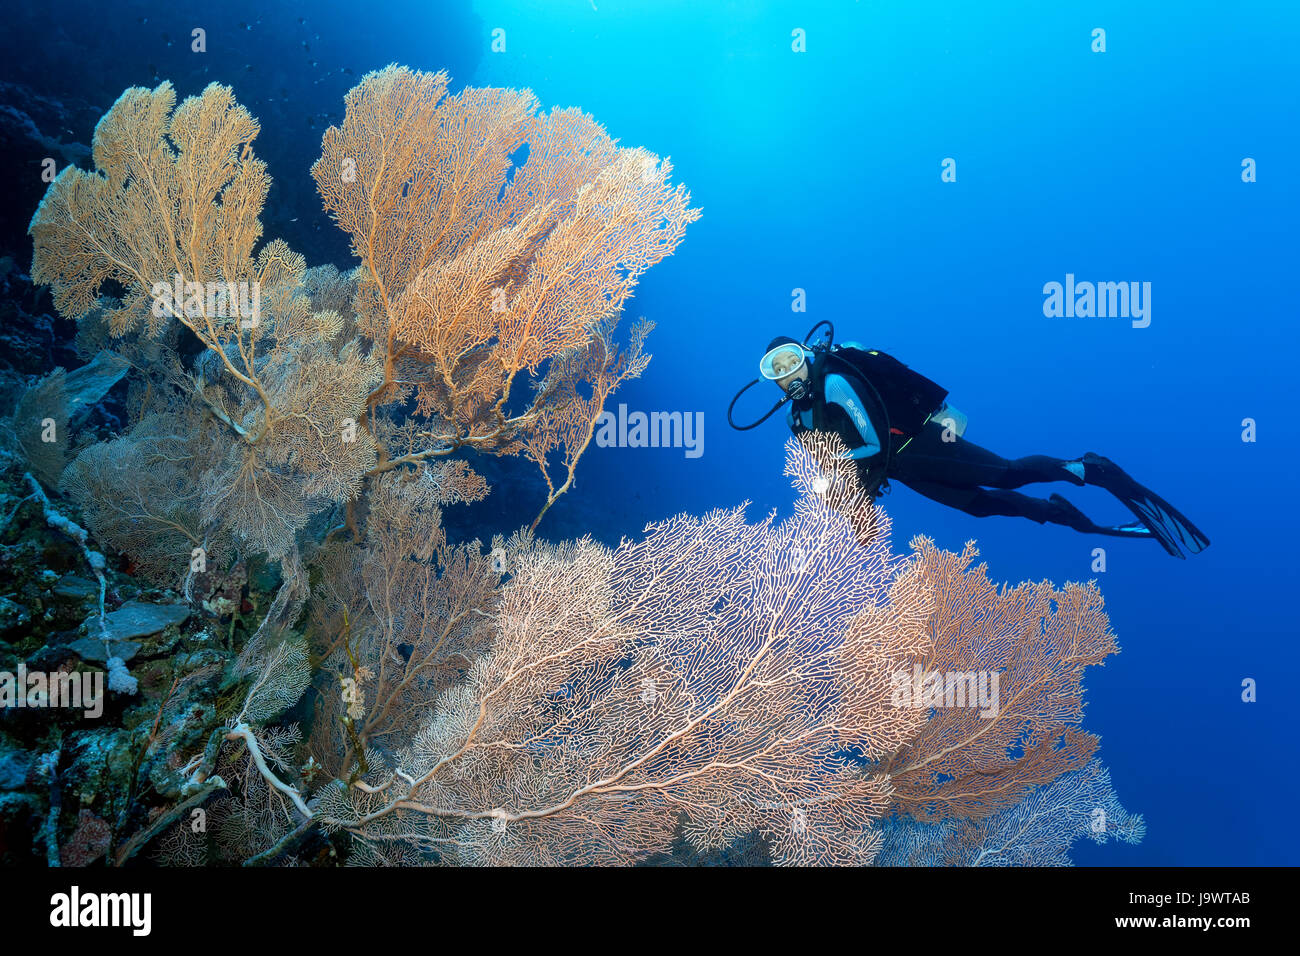 Divers looking at large gorgonian fan (annella mollis), soft coral, Red Sea, Egypt - Stock Image